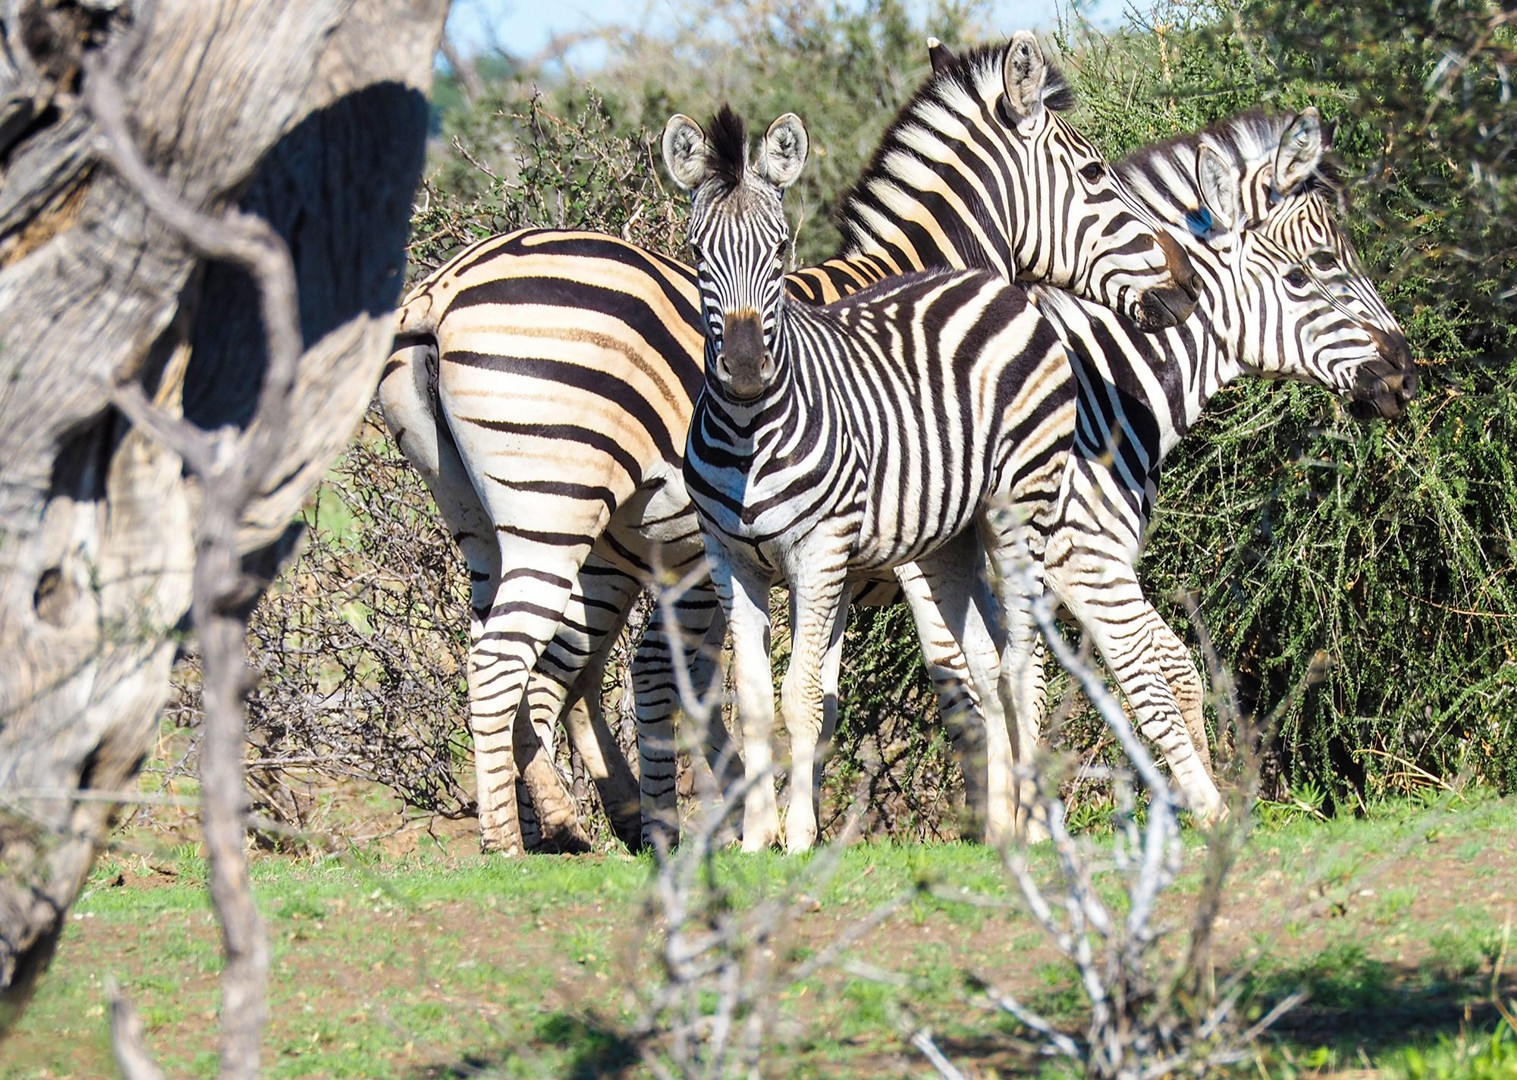 zebra-wilderness-south-africa-botswana-guided-mountain-bike-trip-cycling-holidays.jpg - NEW! South Africa and Botswana - Mountain Biking